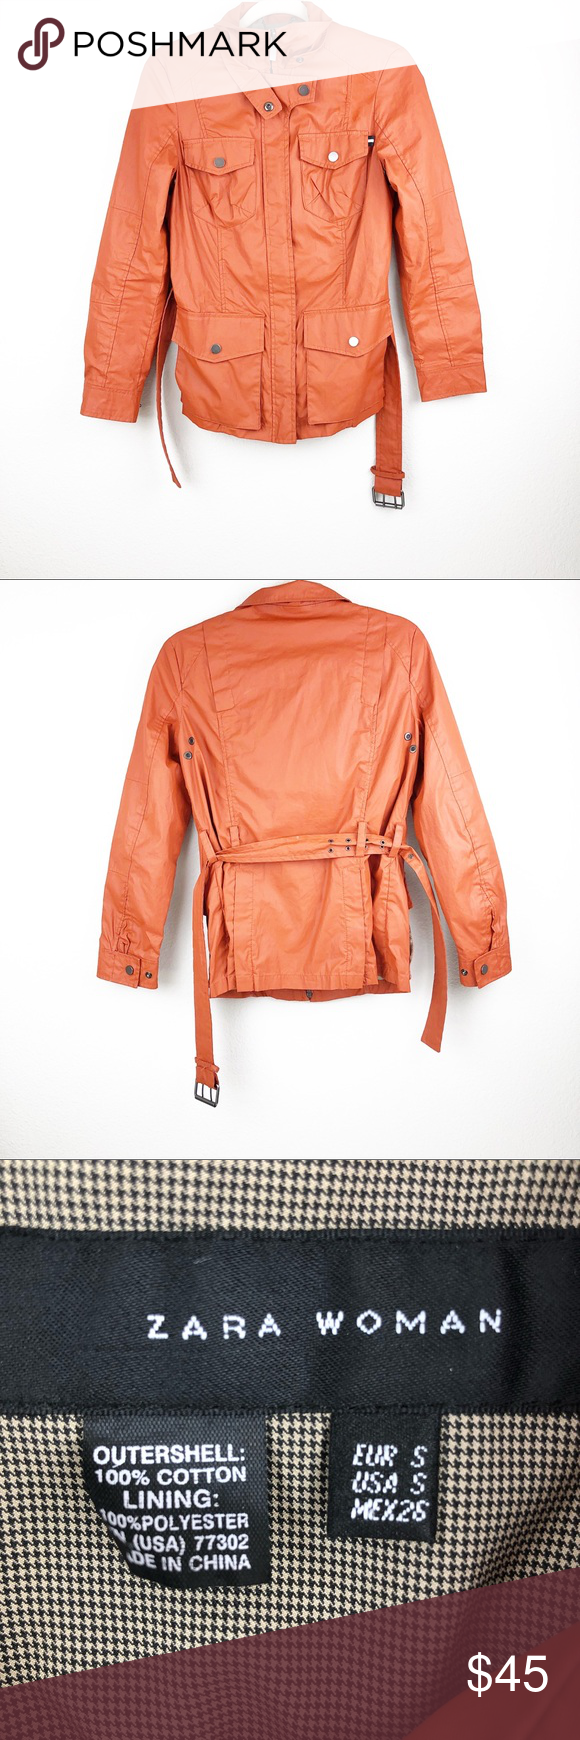 Zara Woman Orange Belted Jacket Size Small There is signs of wear 8229b46b5d327